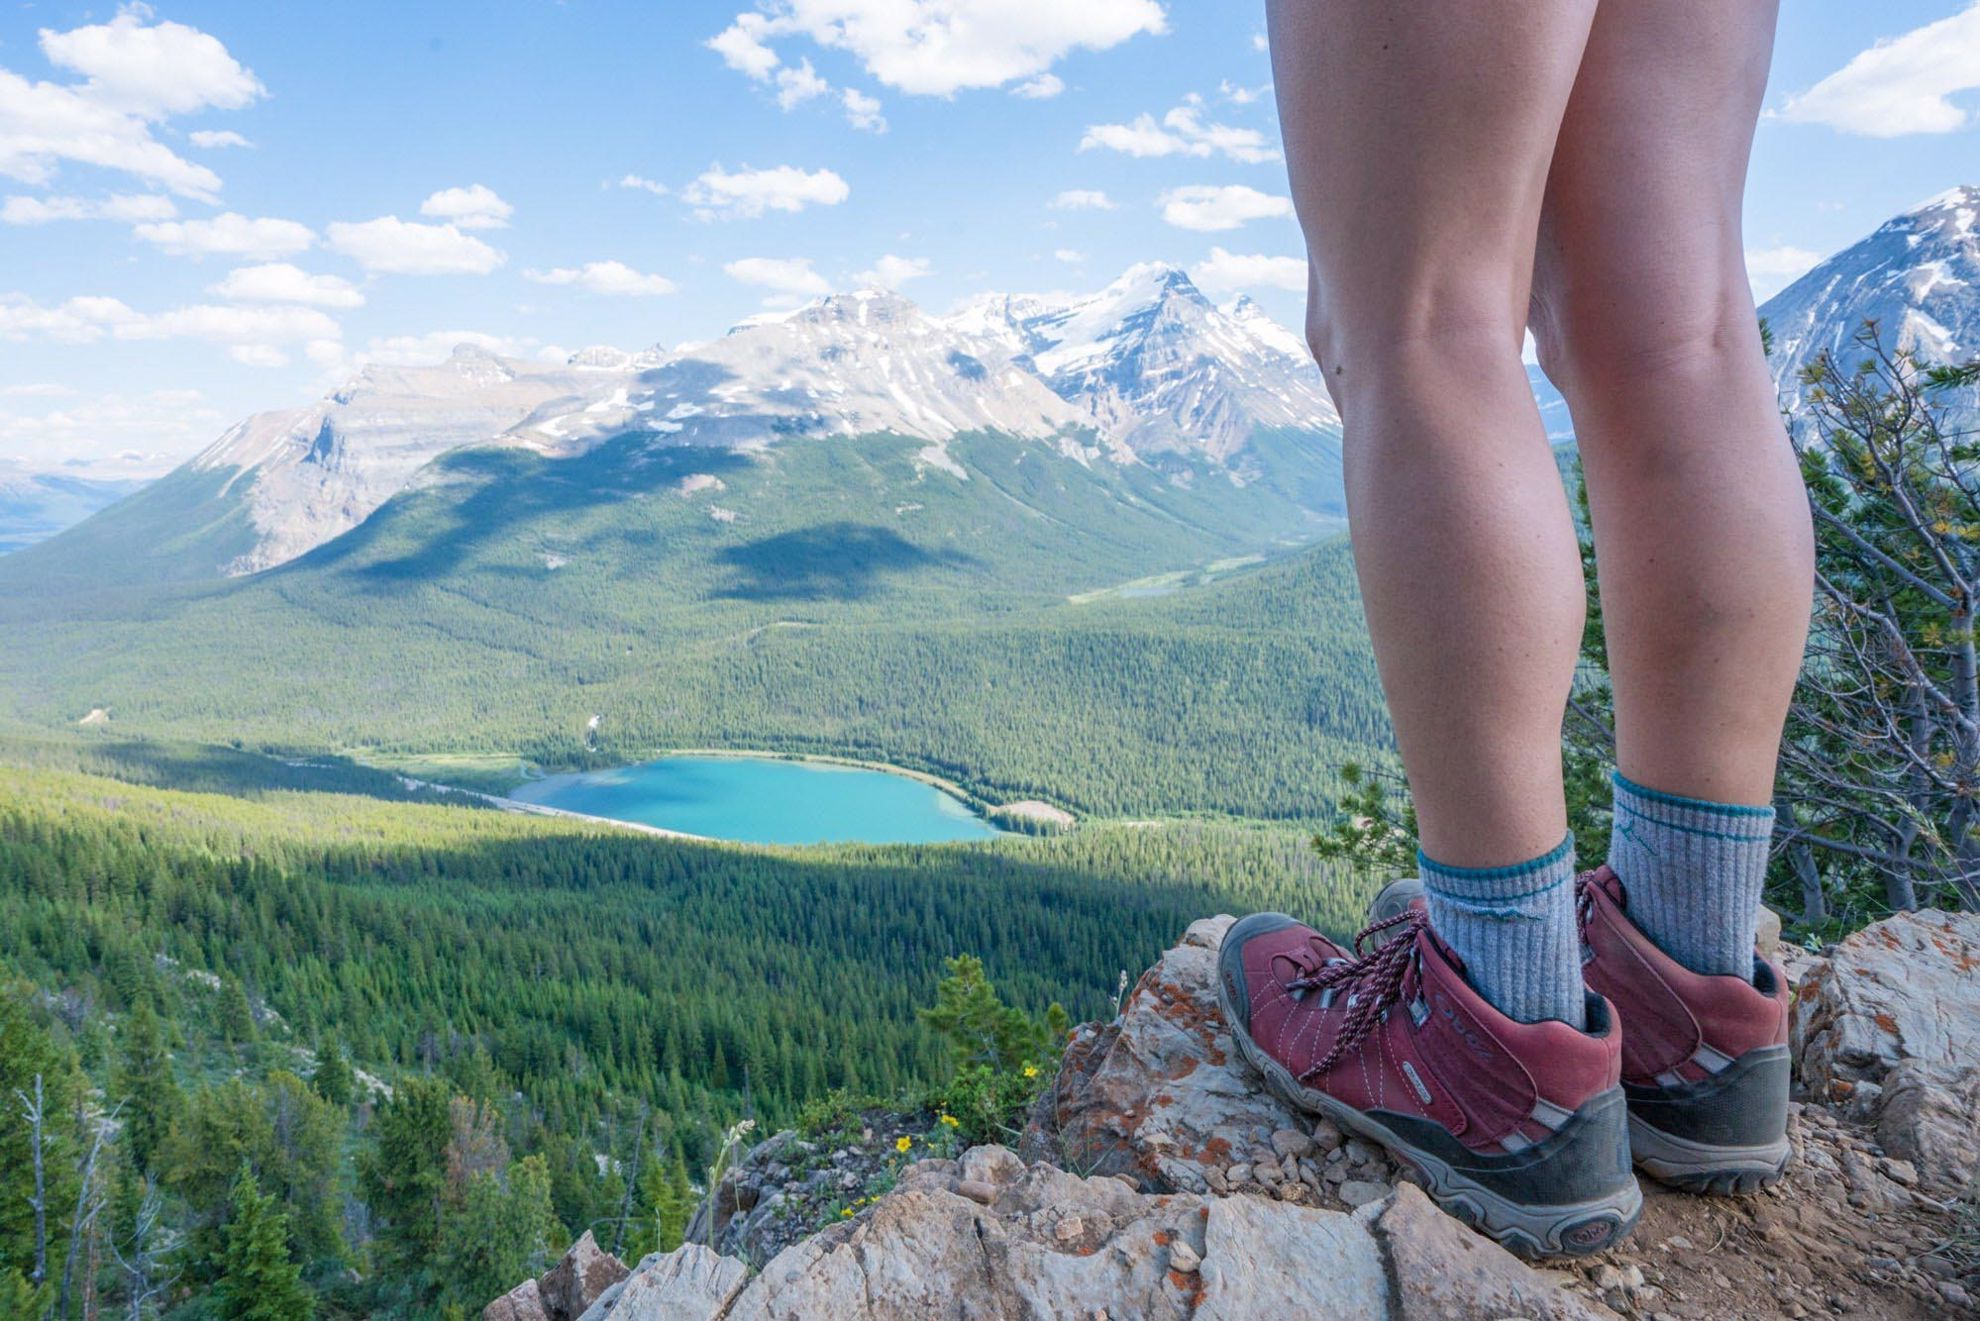 Boots for hiking vs boots for backpacking